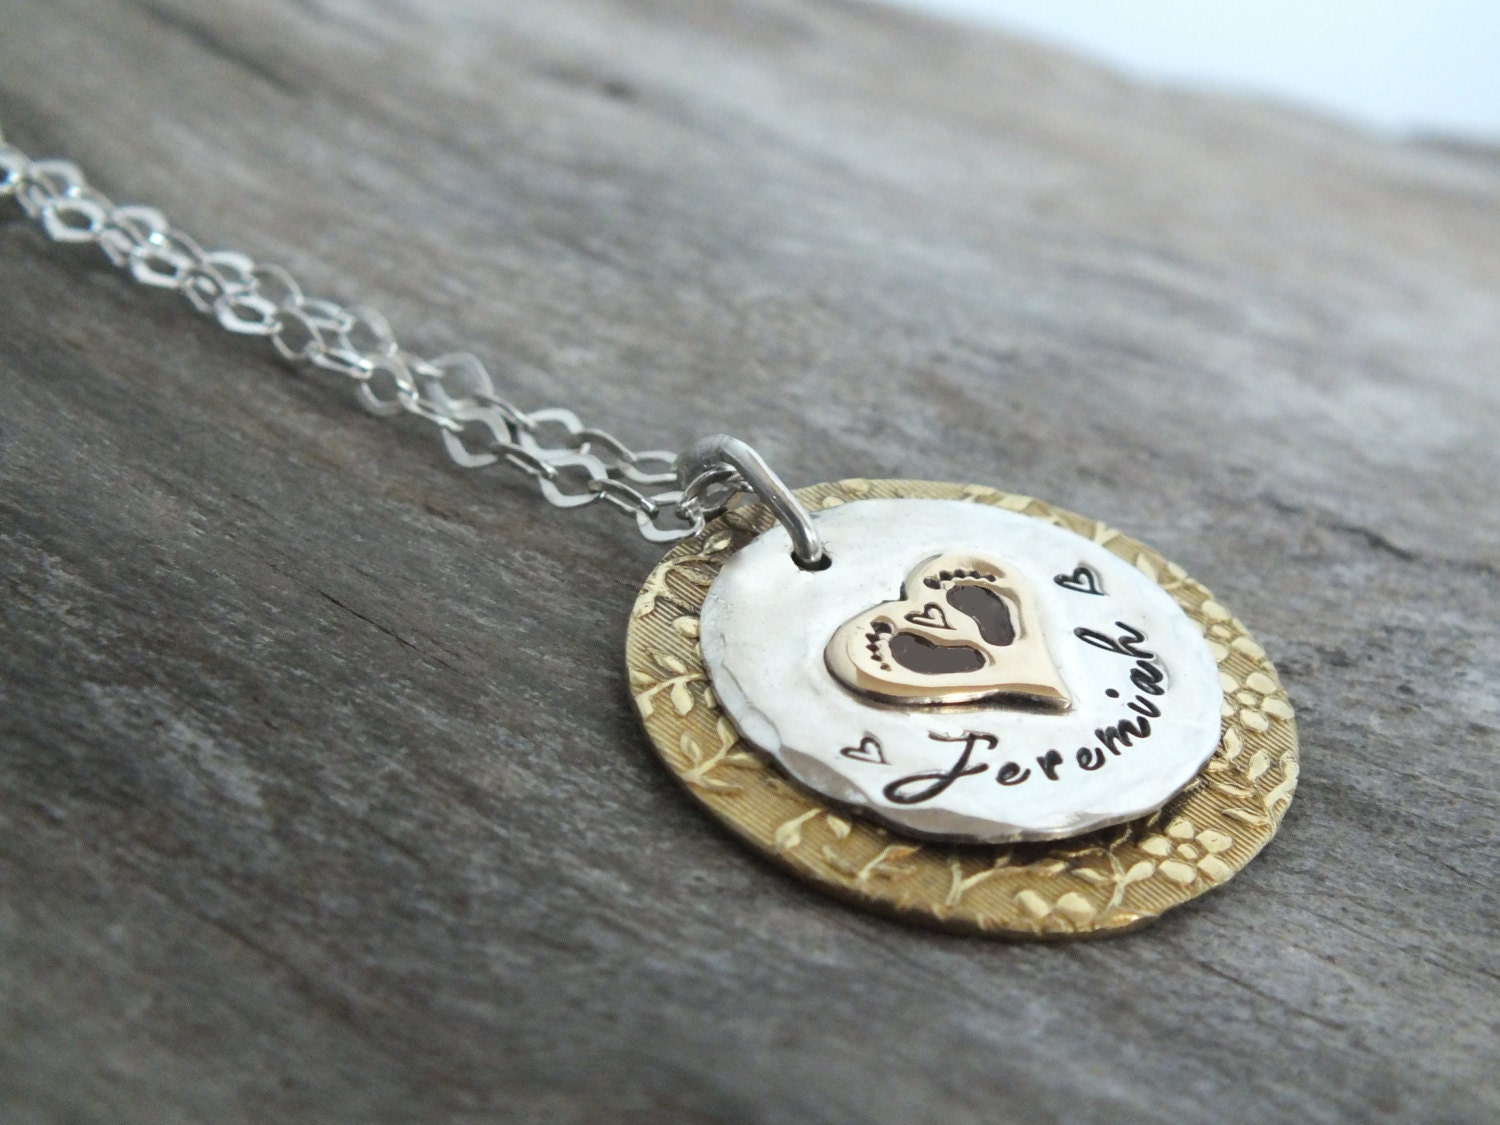 New Baby Jewelry | New Baby Necklace |New Baby Gift |New Baby Boy ...